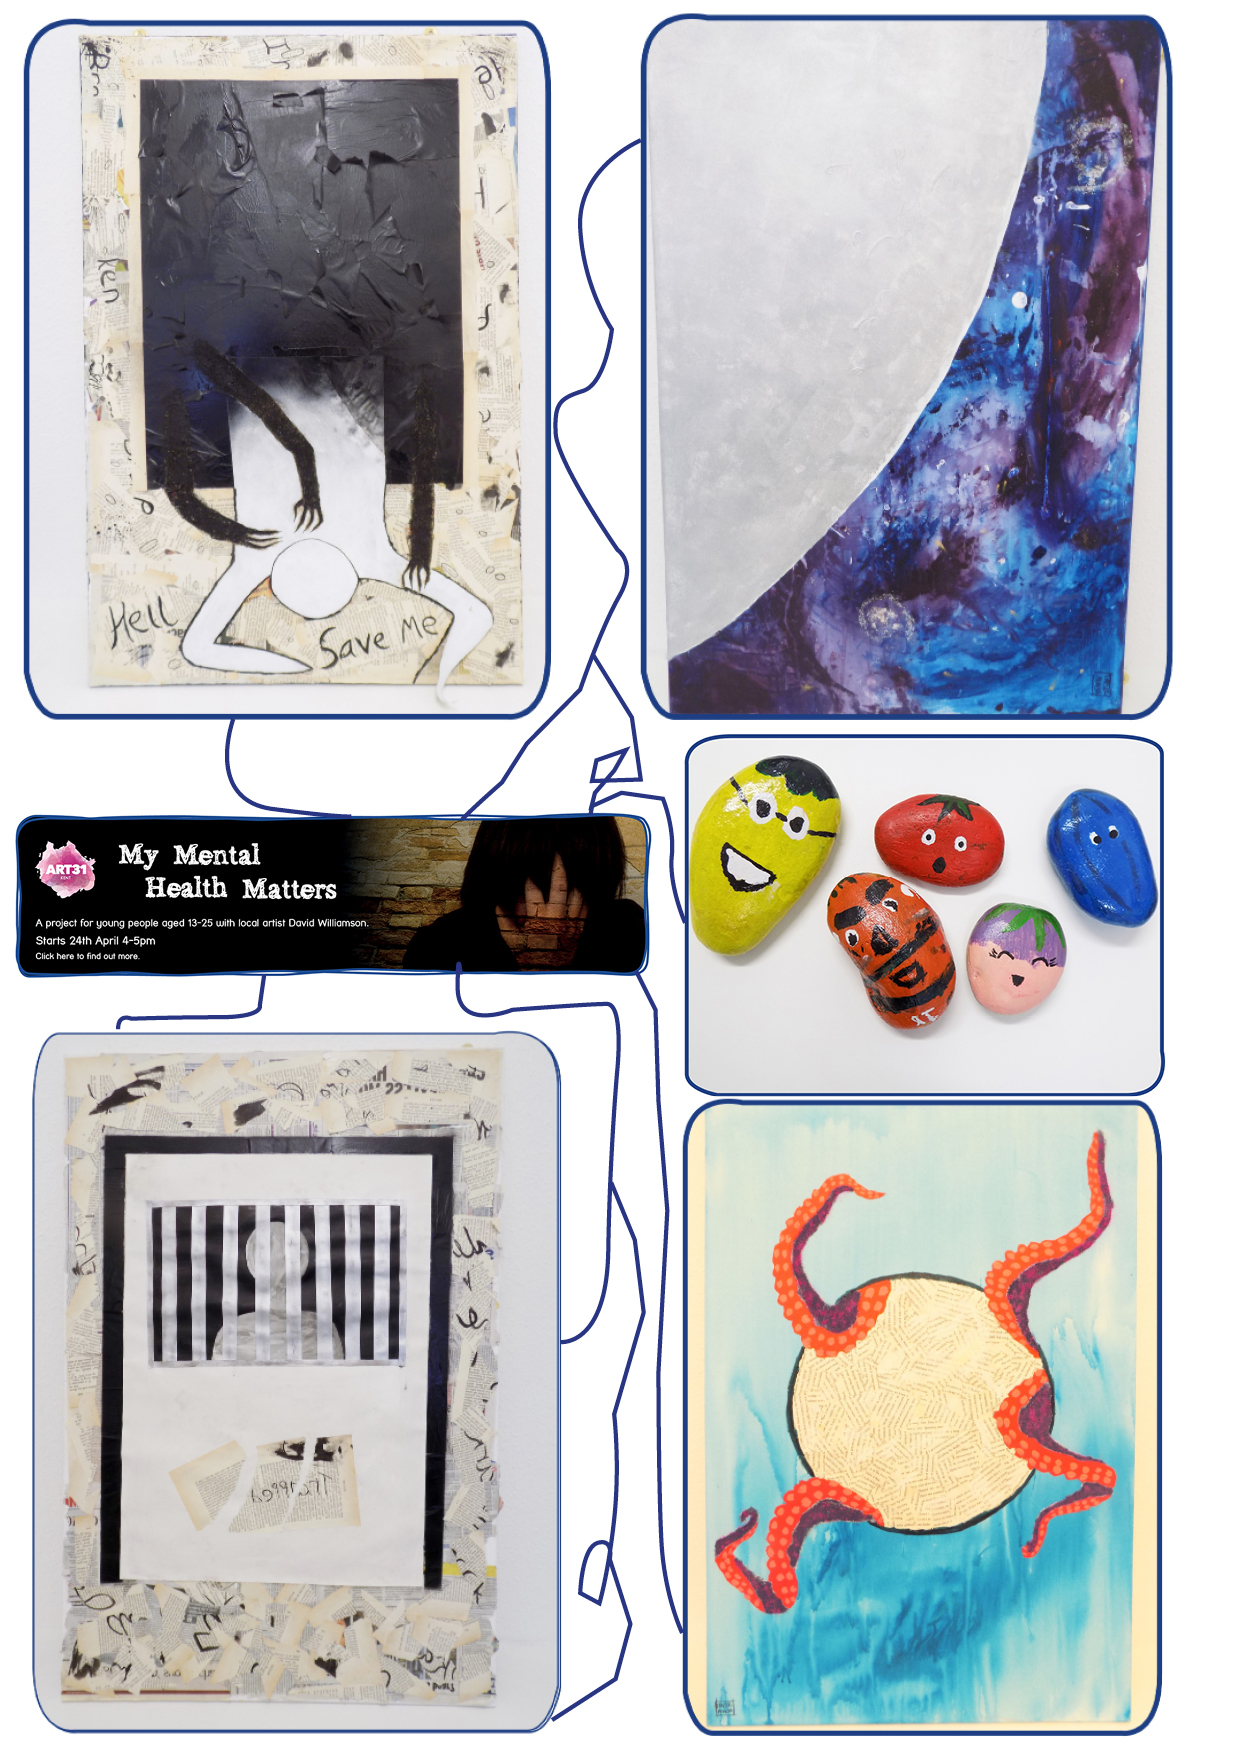 This image shows some of the artwork created as part of the Arts 31 Programme. The different formats of artwork here show things such as human figures, painted pebbles, newspaper-stylized artwork.